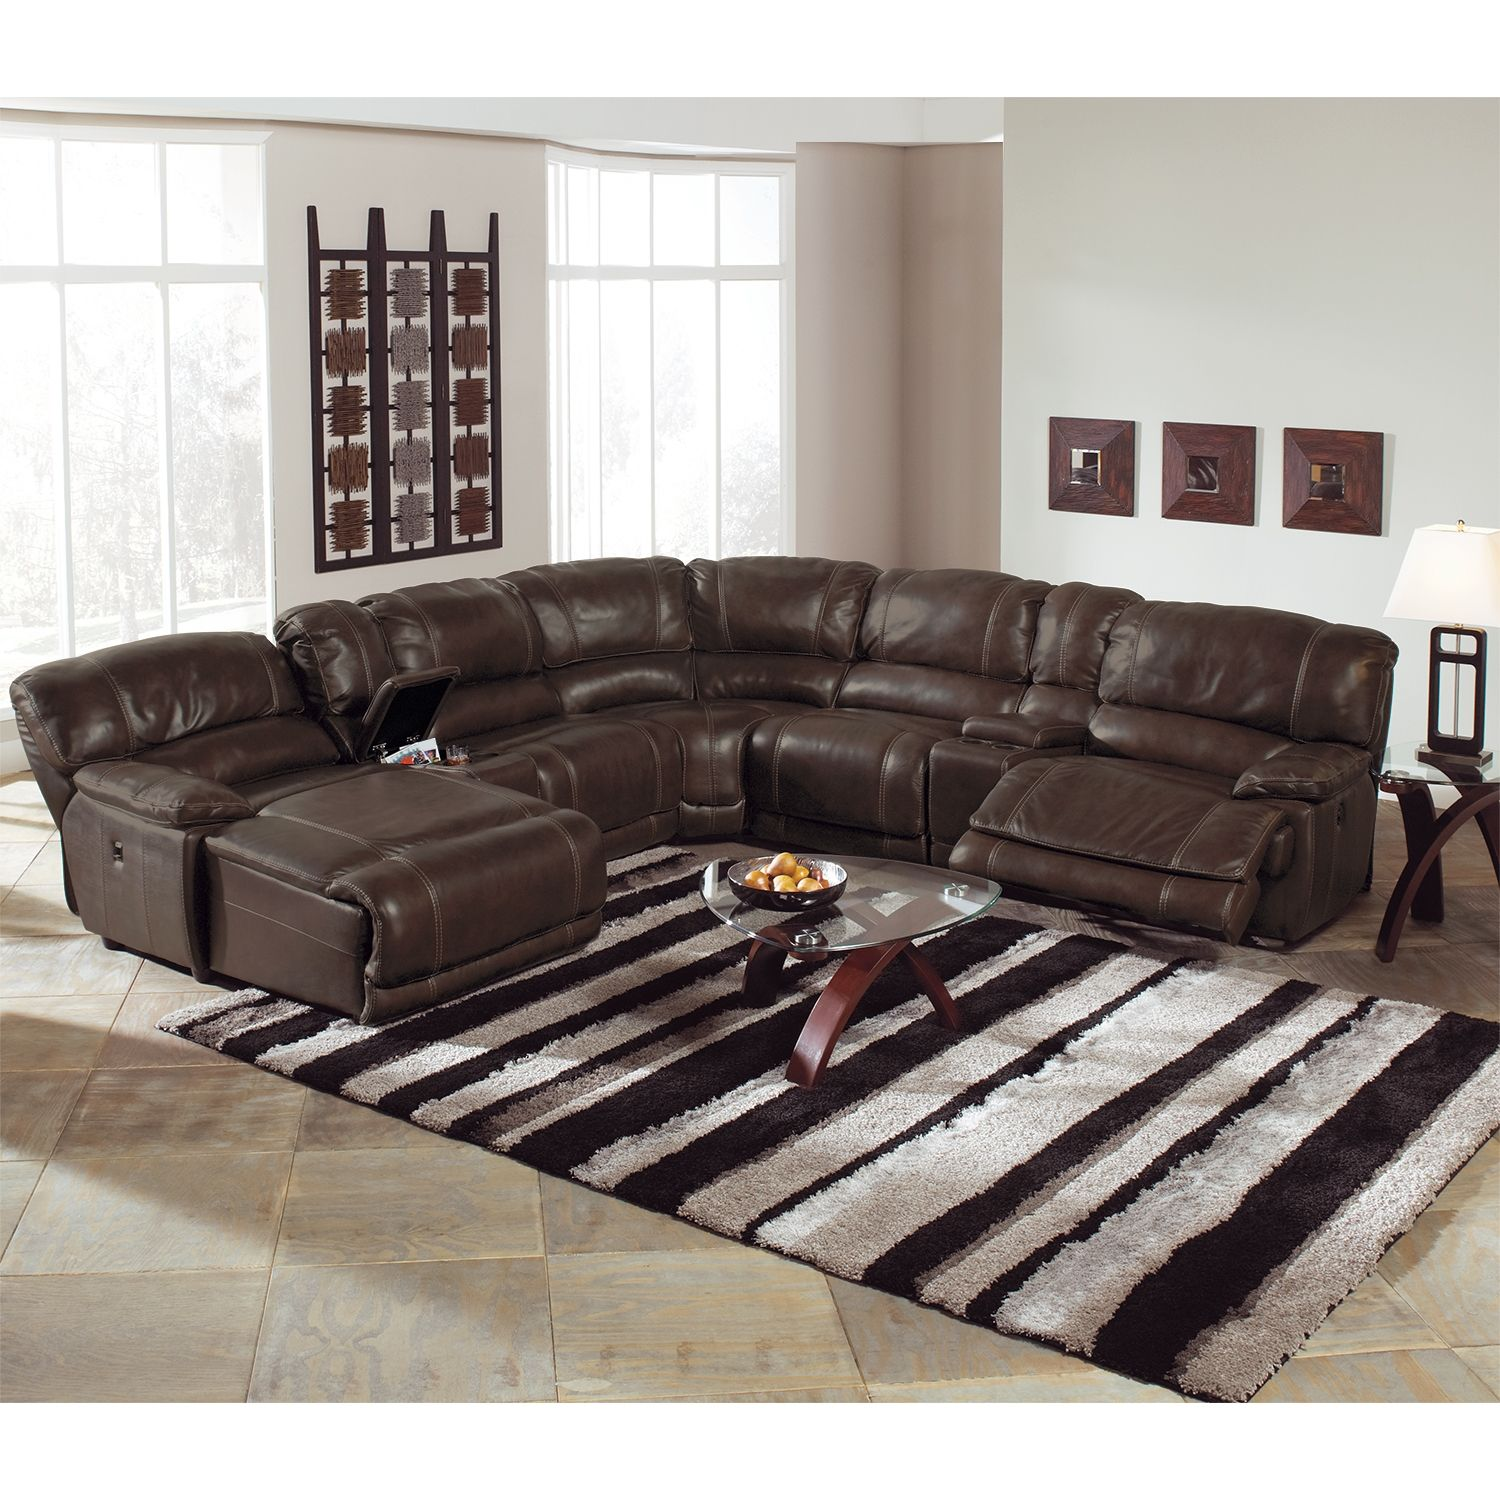 Sofa Room Leeson St High Quality Brands Uk Malo 6 Piece Power Reclining Sectional With Left